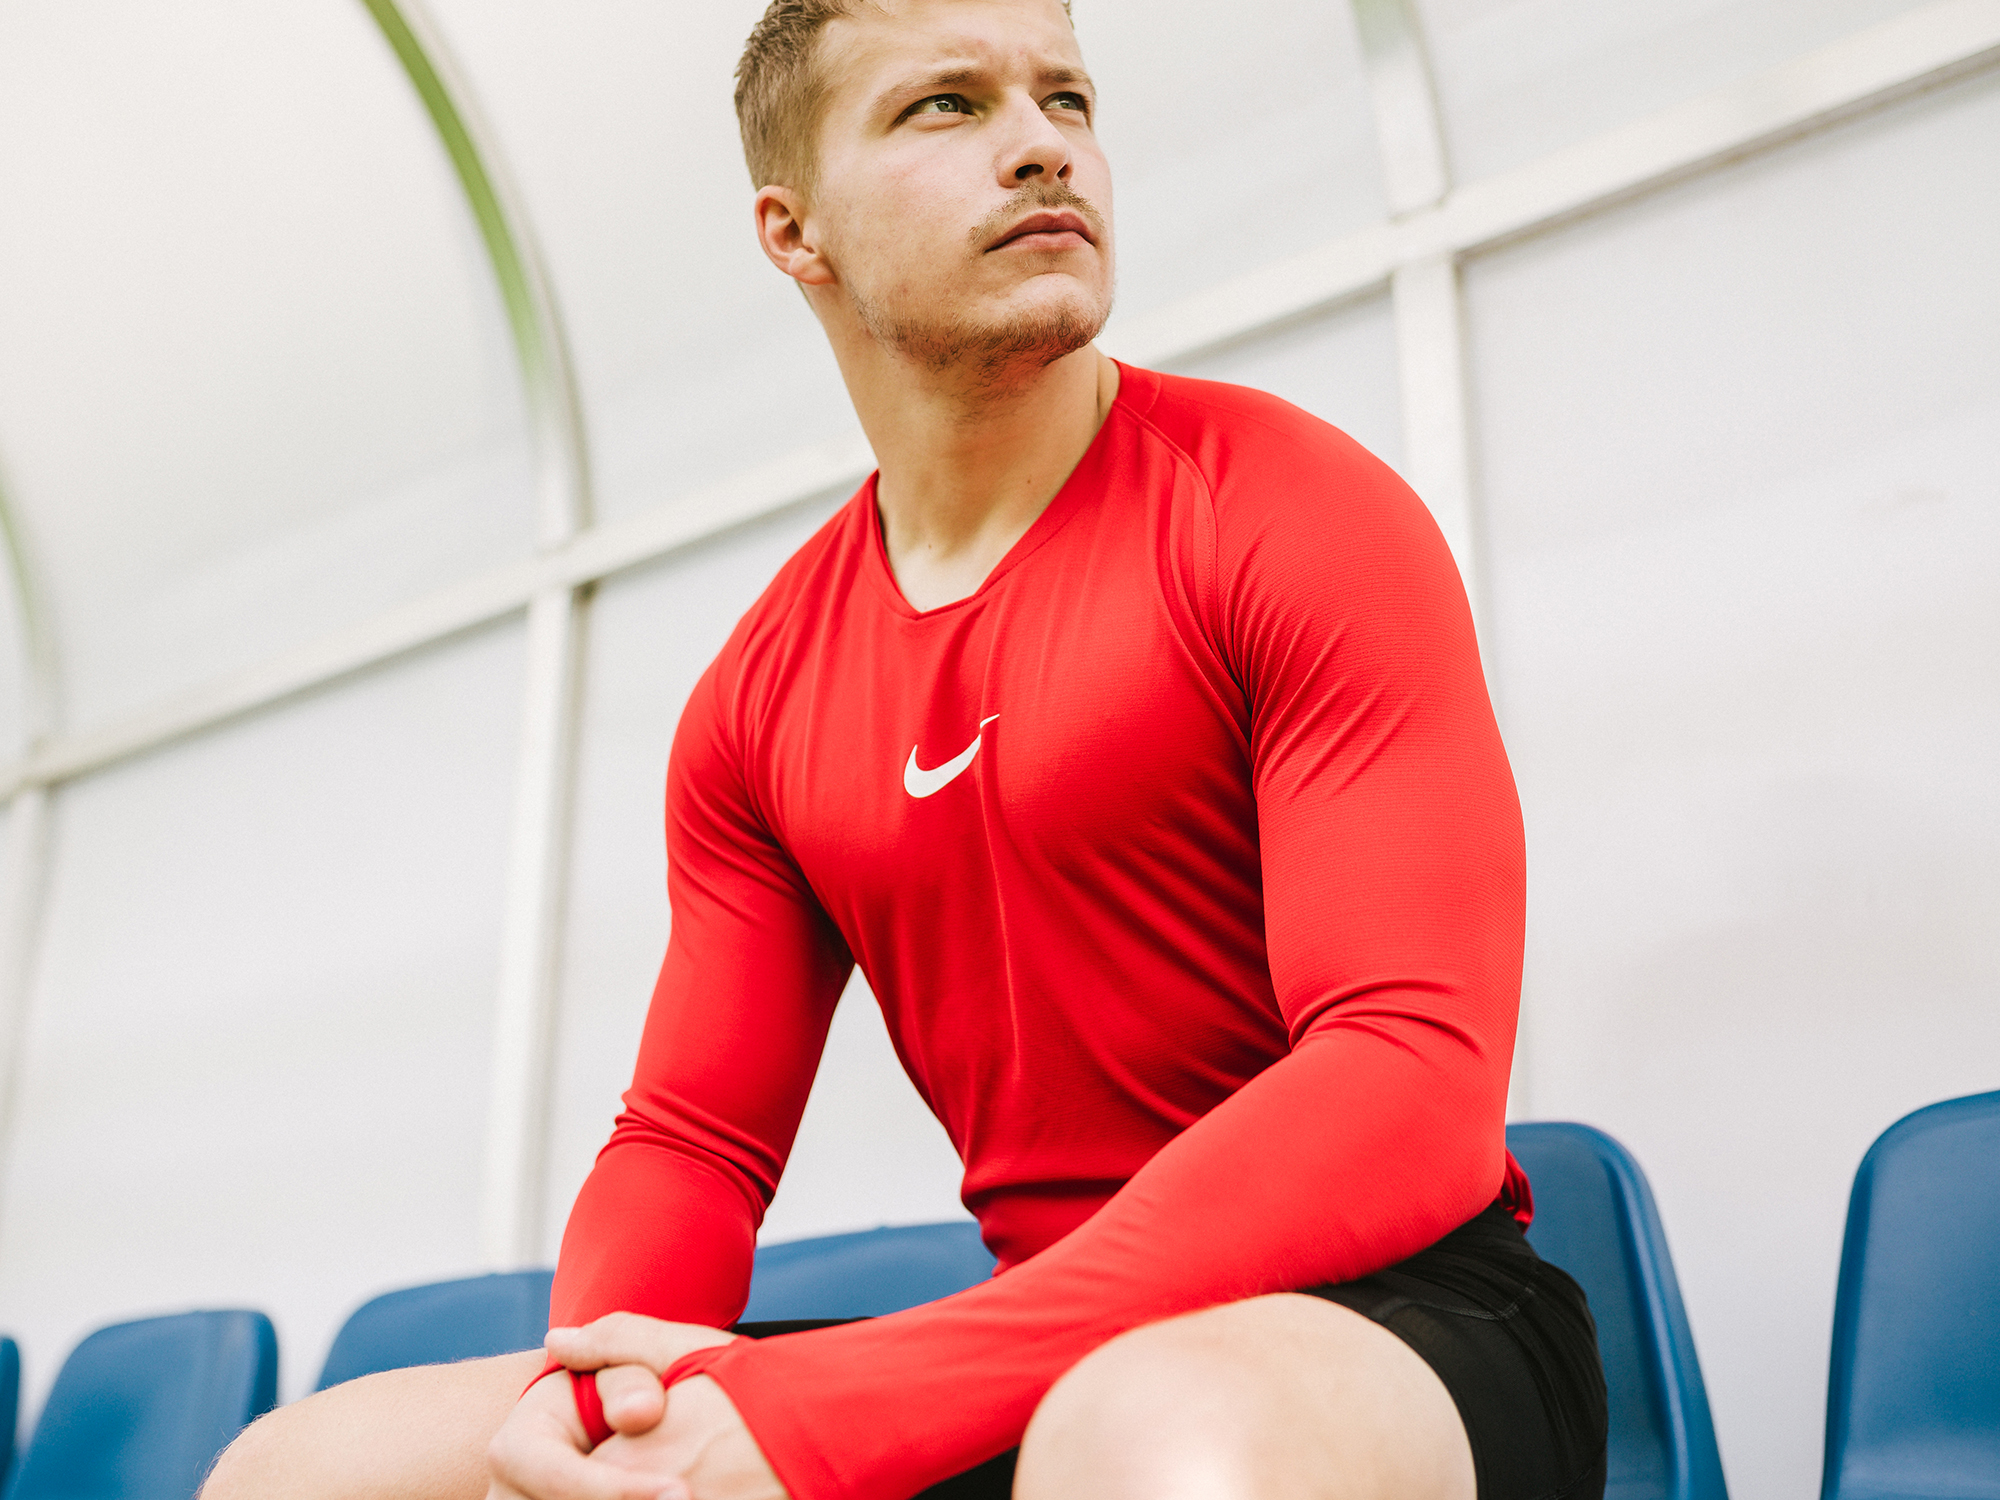 Get ready for winter with base layer